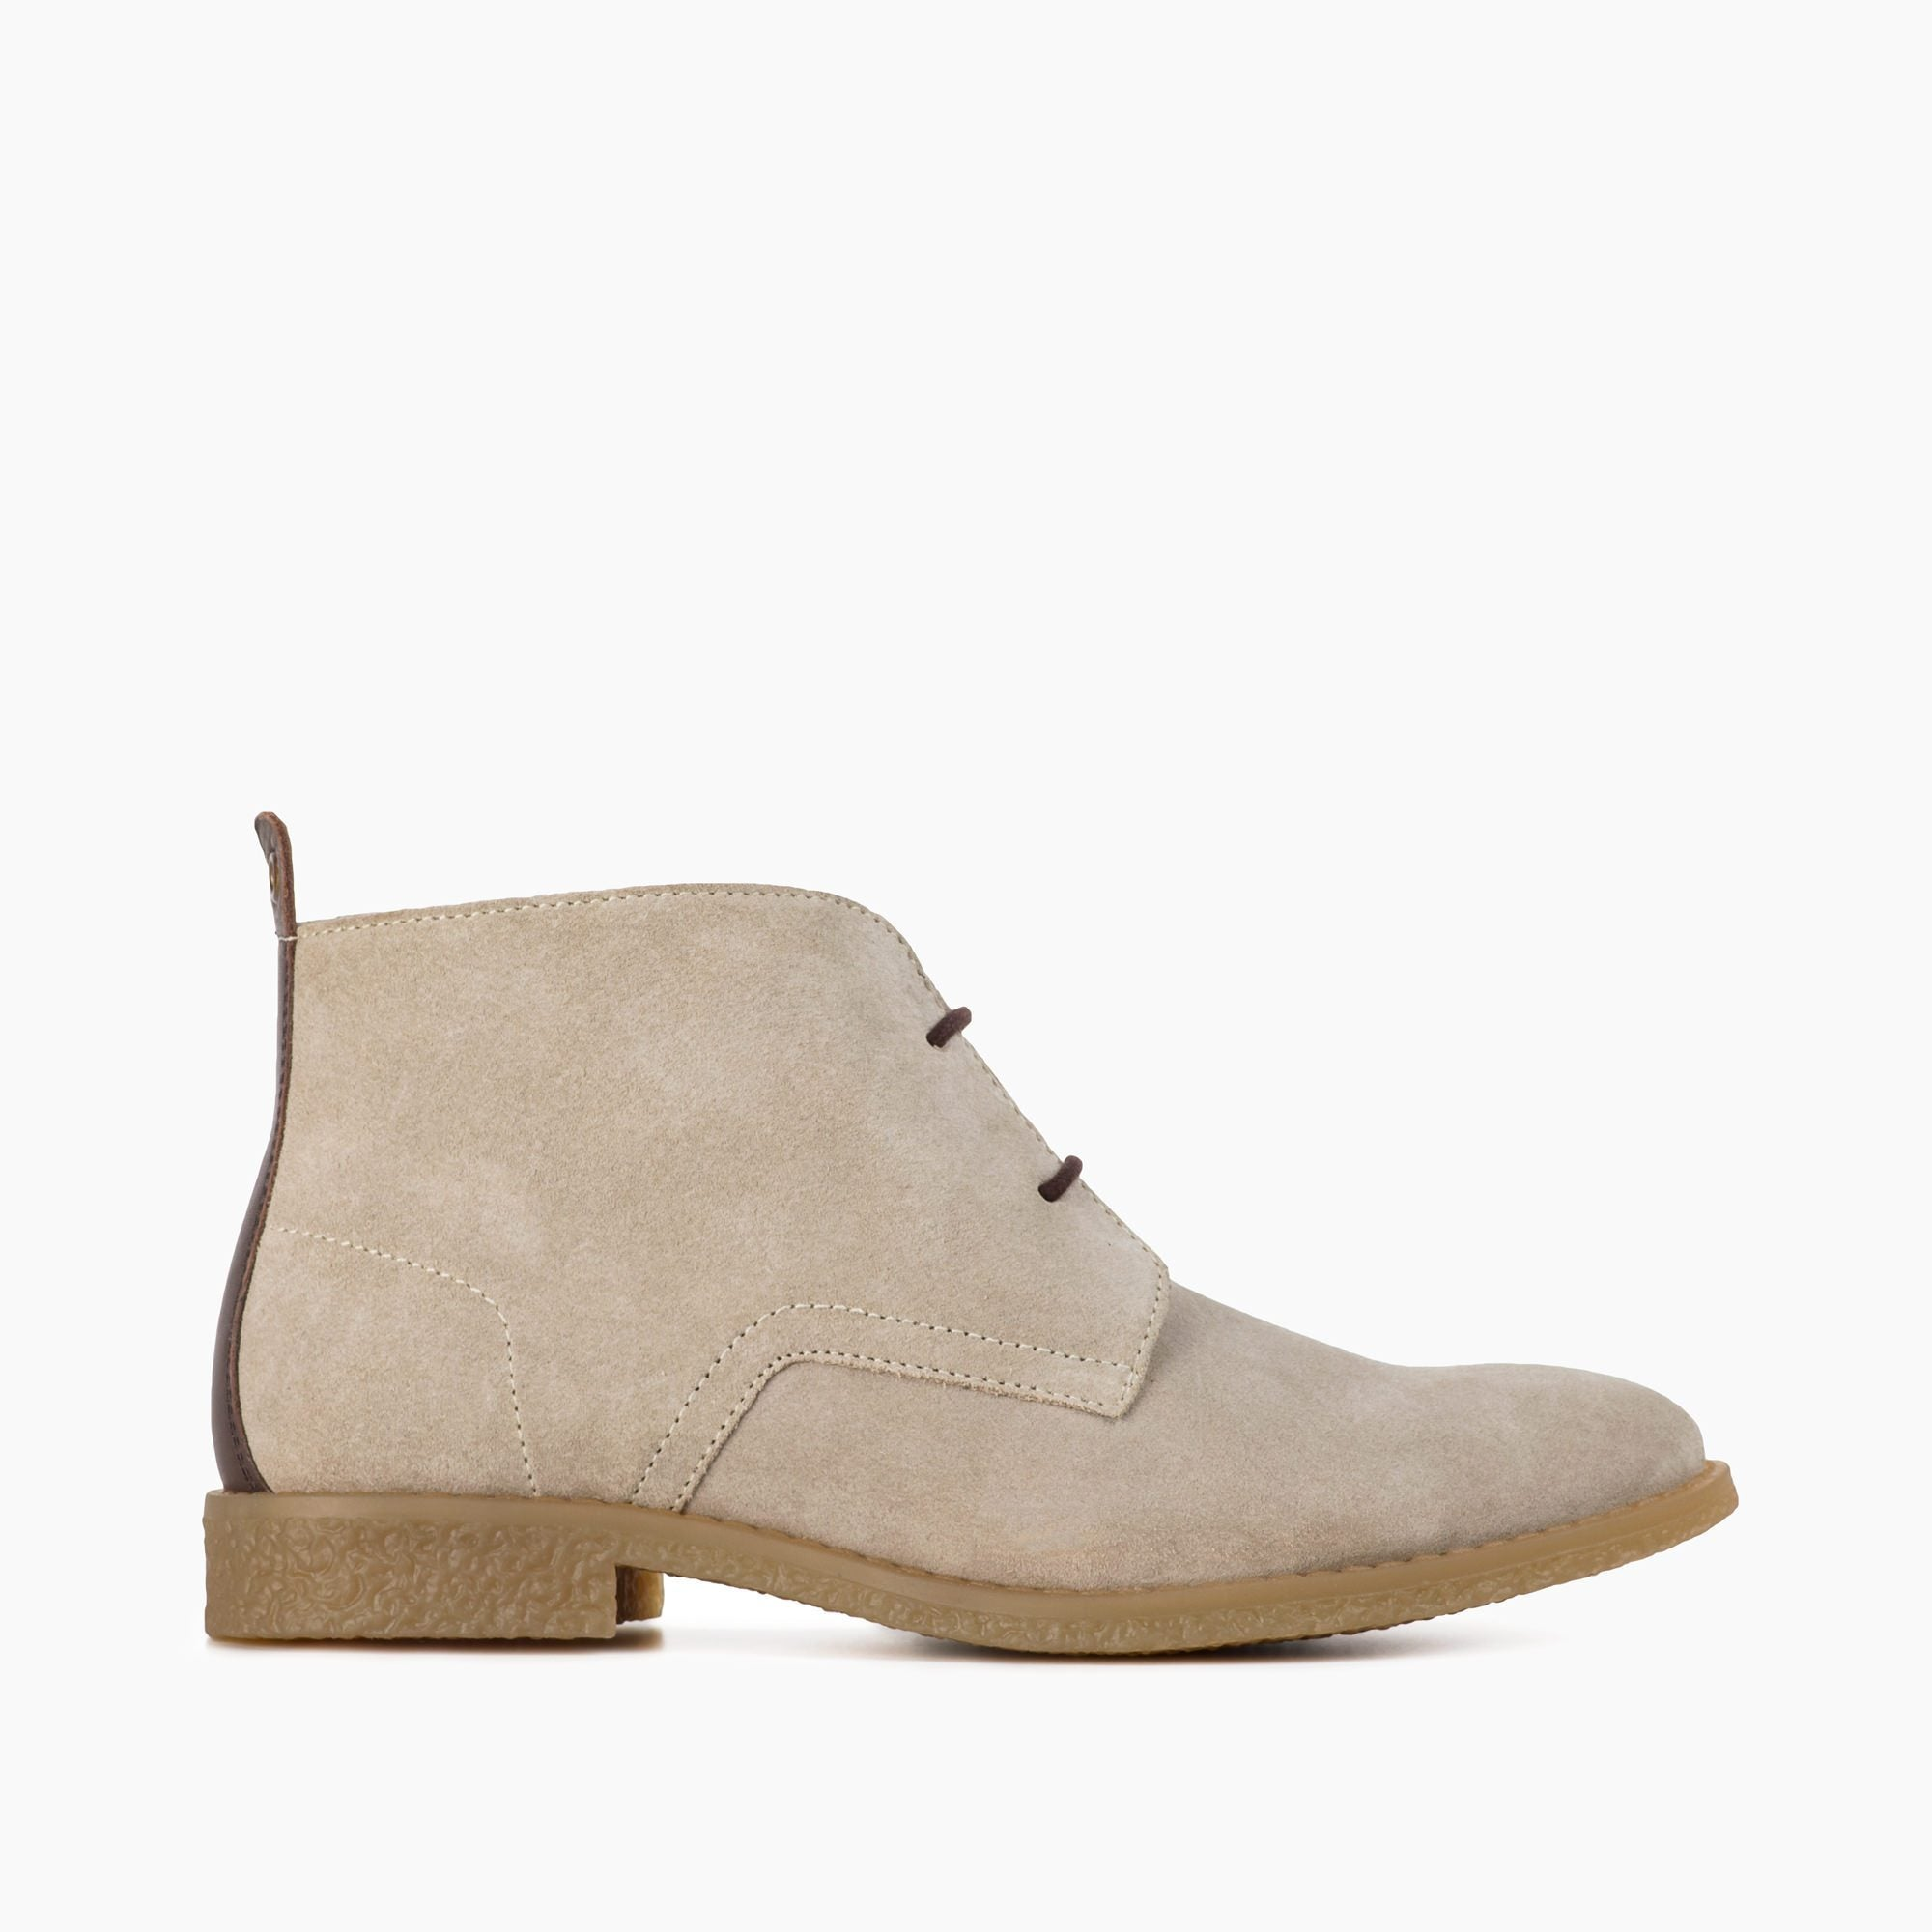 Redfoot Footwear UK 3 / EURO 36 / US 5 / Mink / Suede ISLA LIGHT TAN